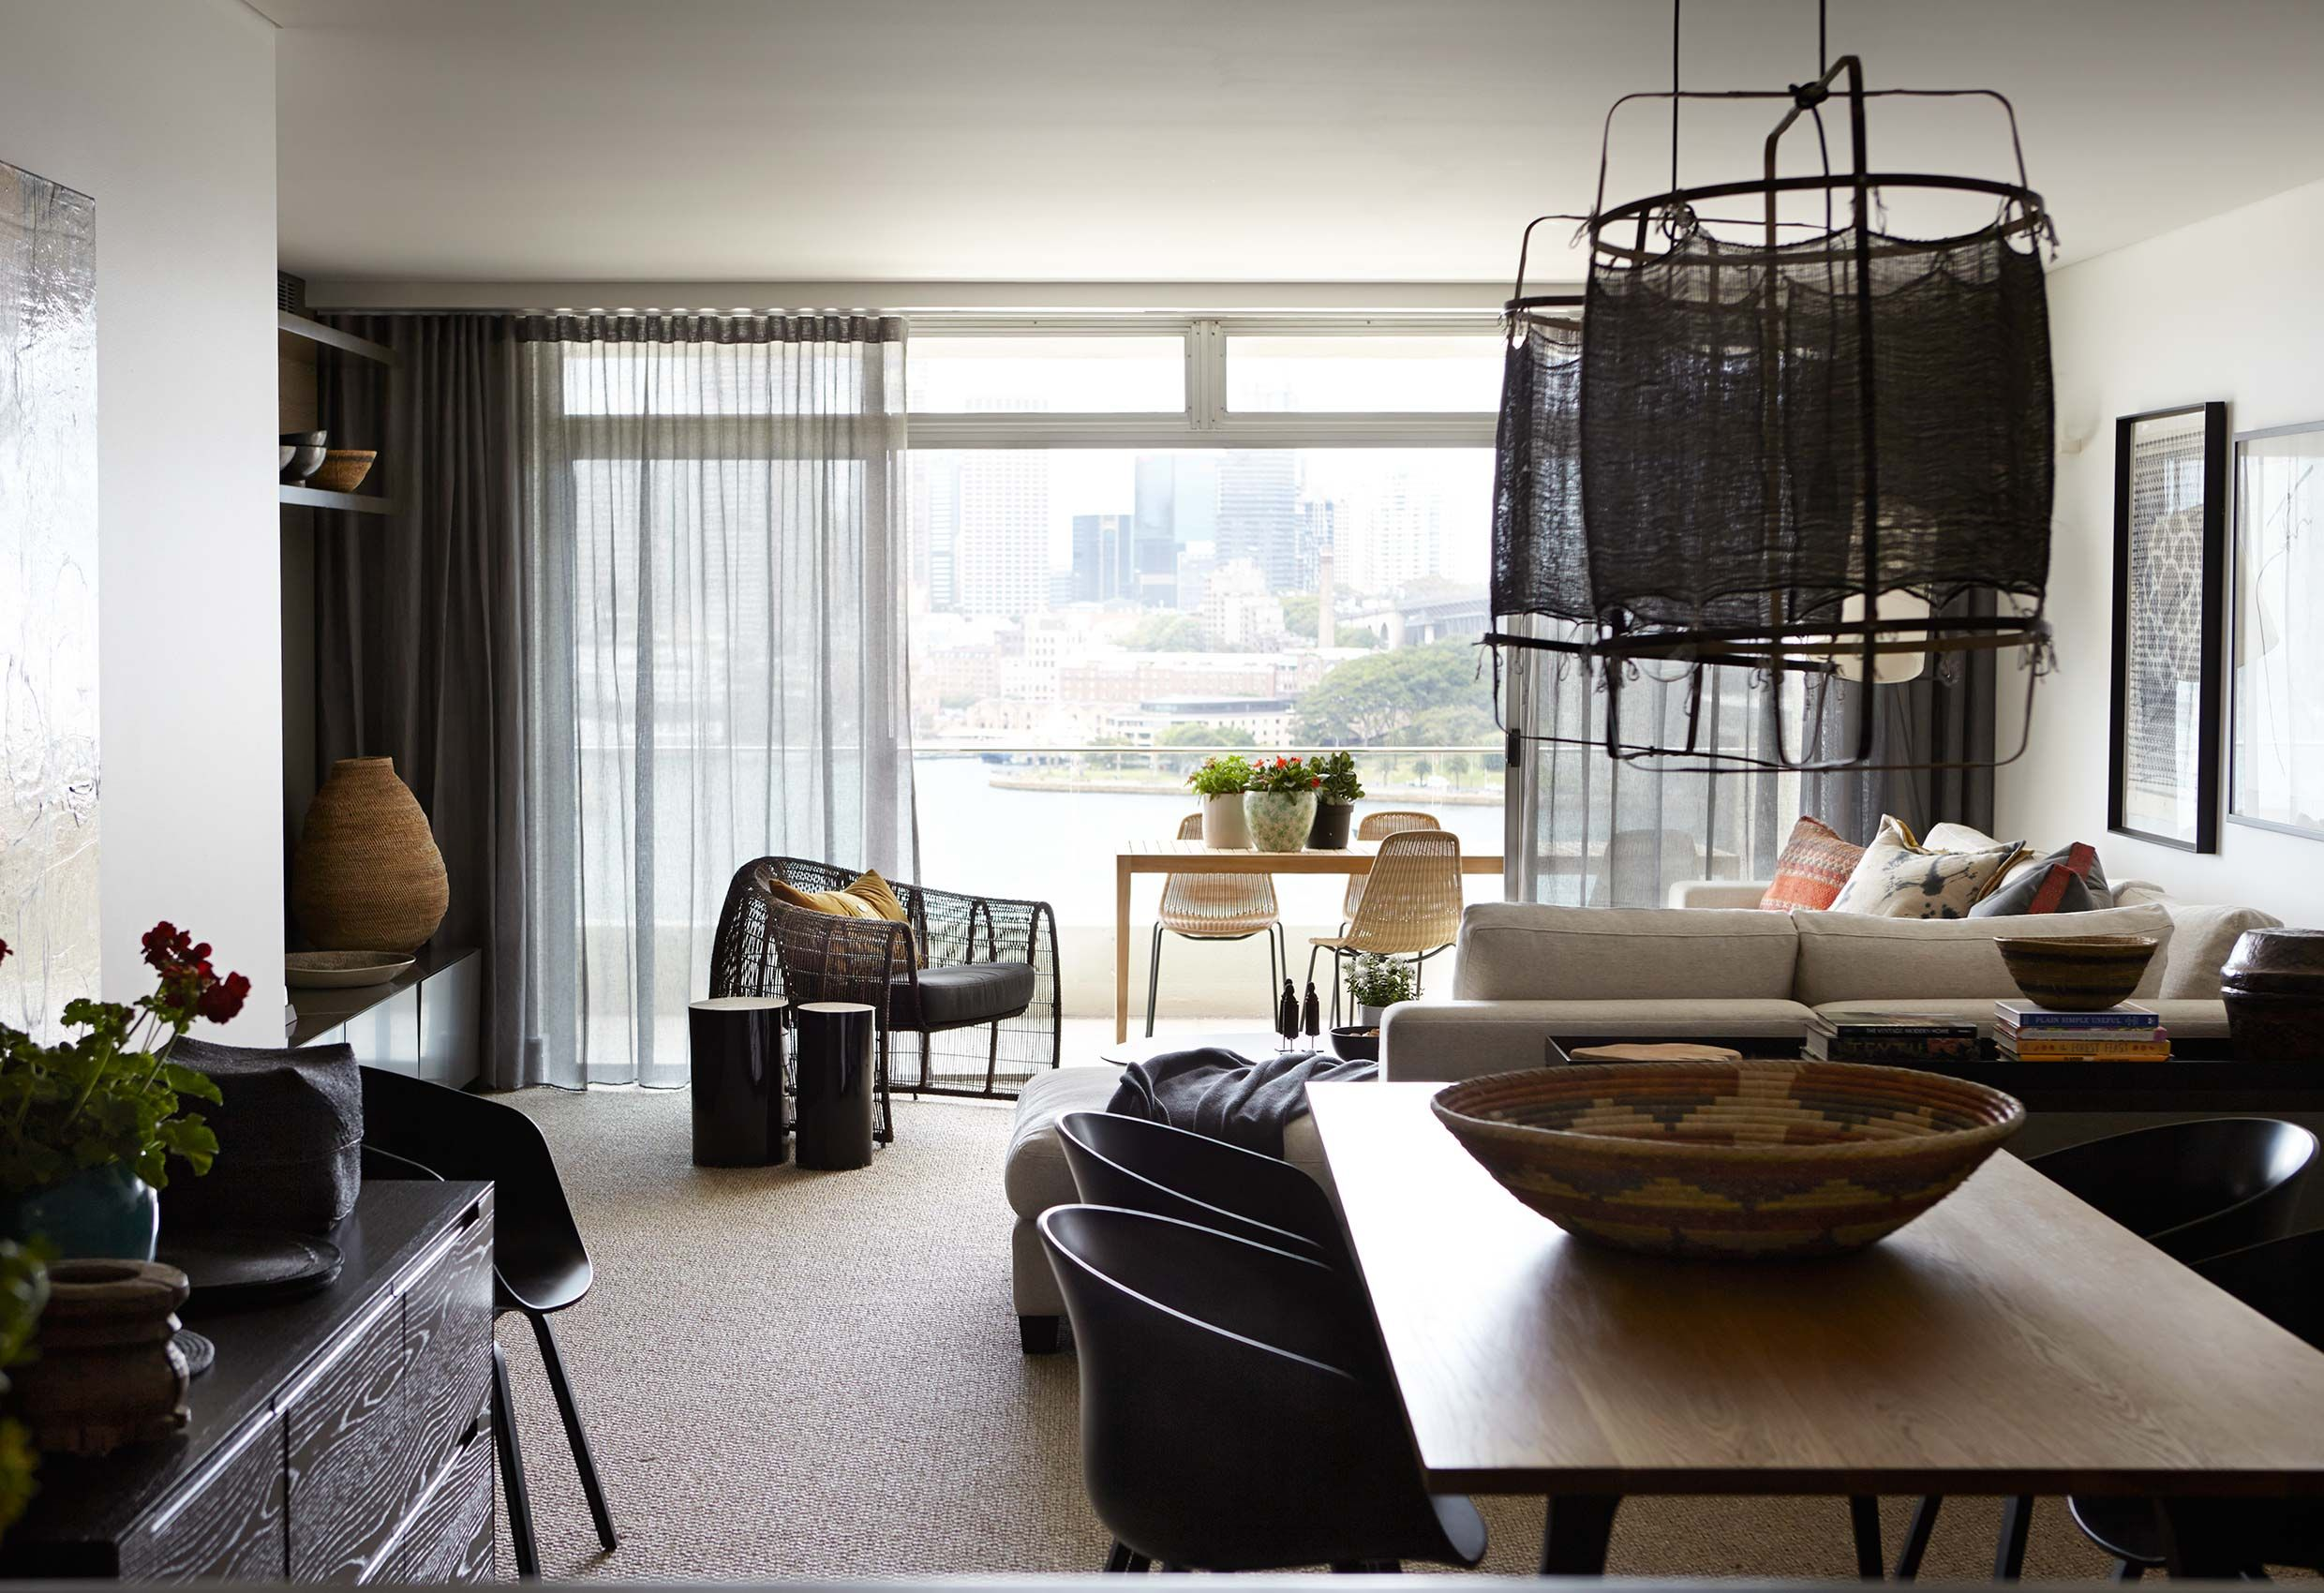 Exceptional For This 3rd Floor Apartment With Spectacular Harbour Views, Hare + Klein  Created A Comfortable